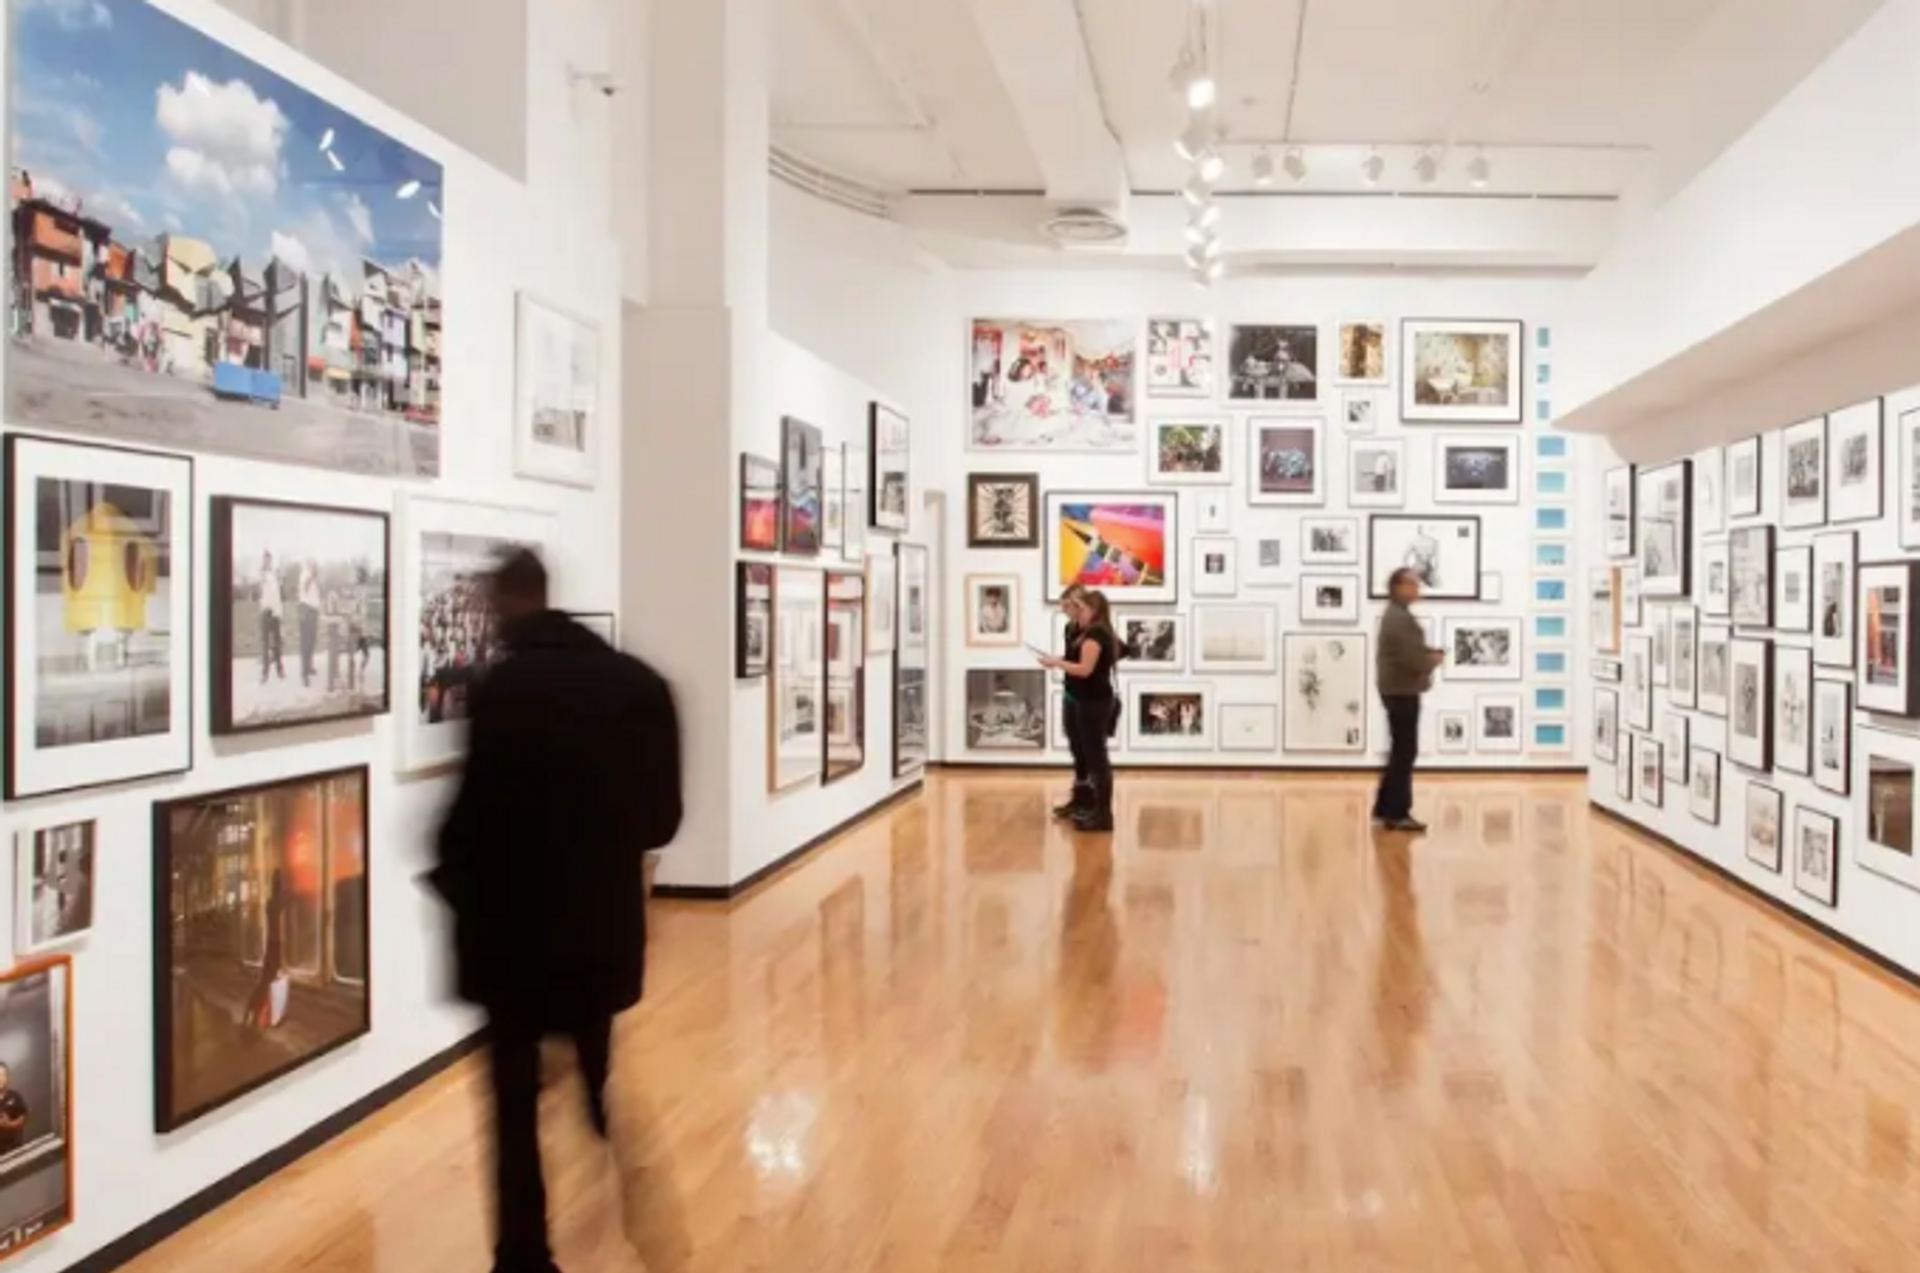 Visitors to the Museum of Contemporary Photography can reserve a time slot via Tock.